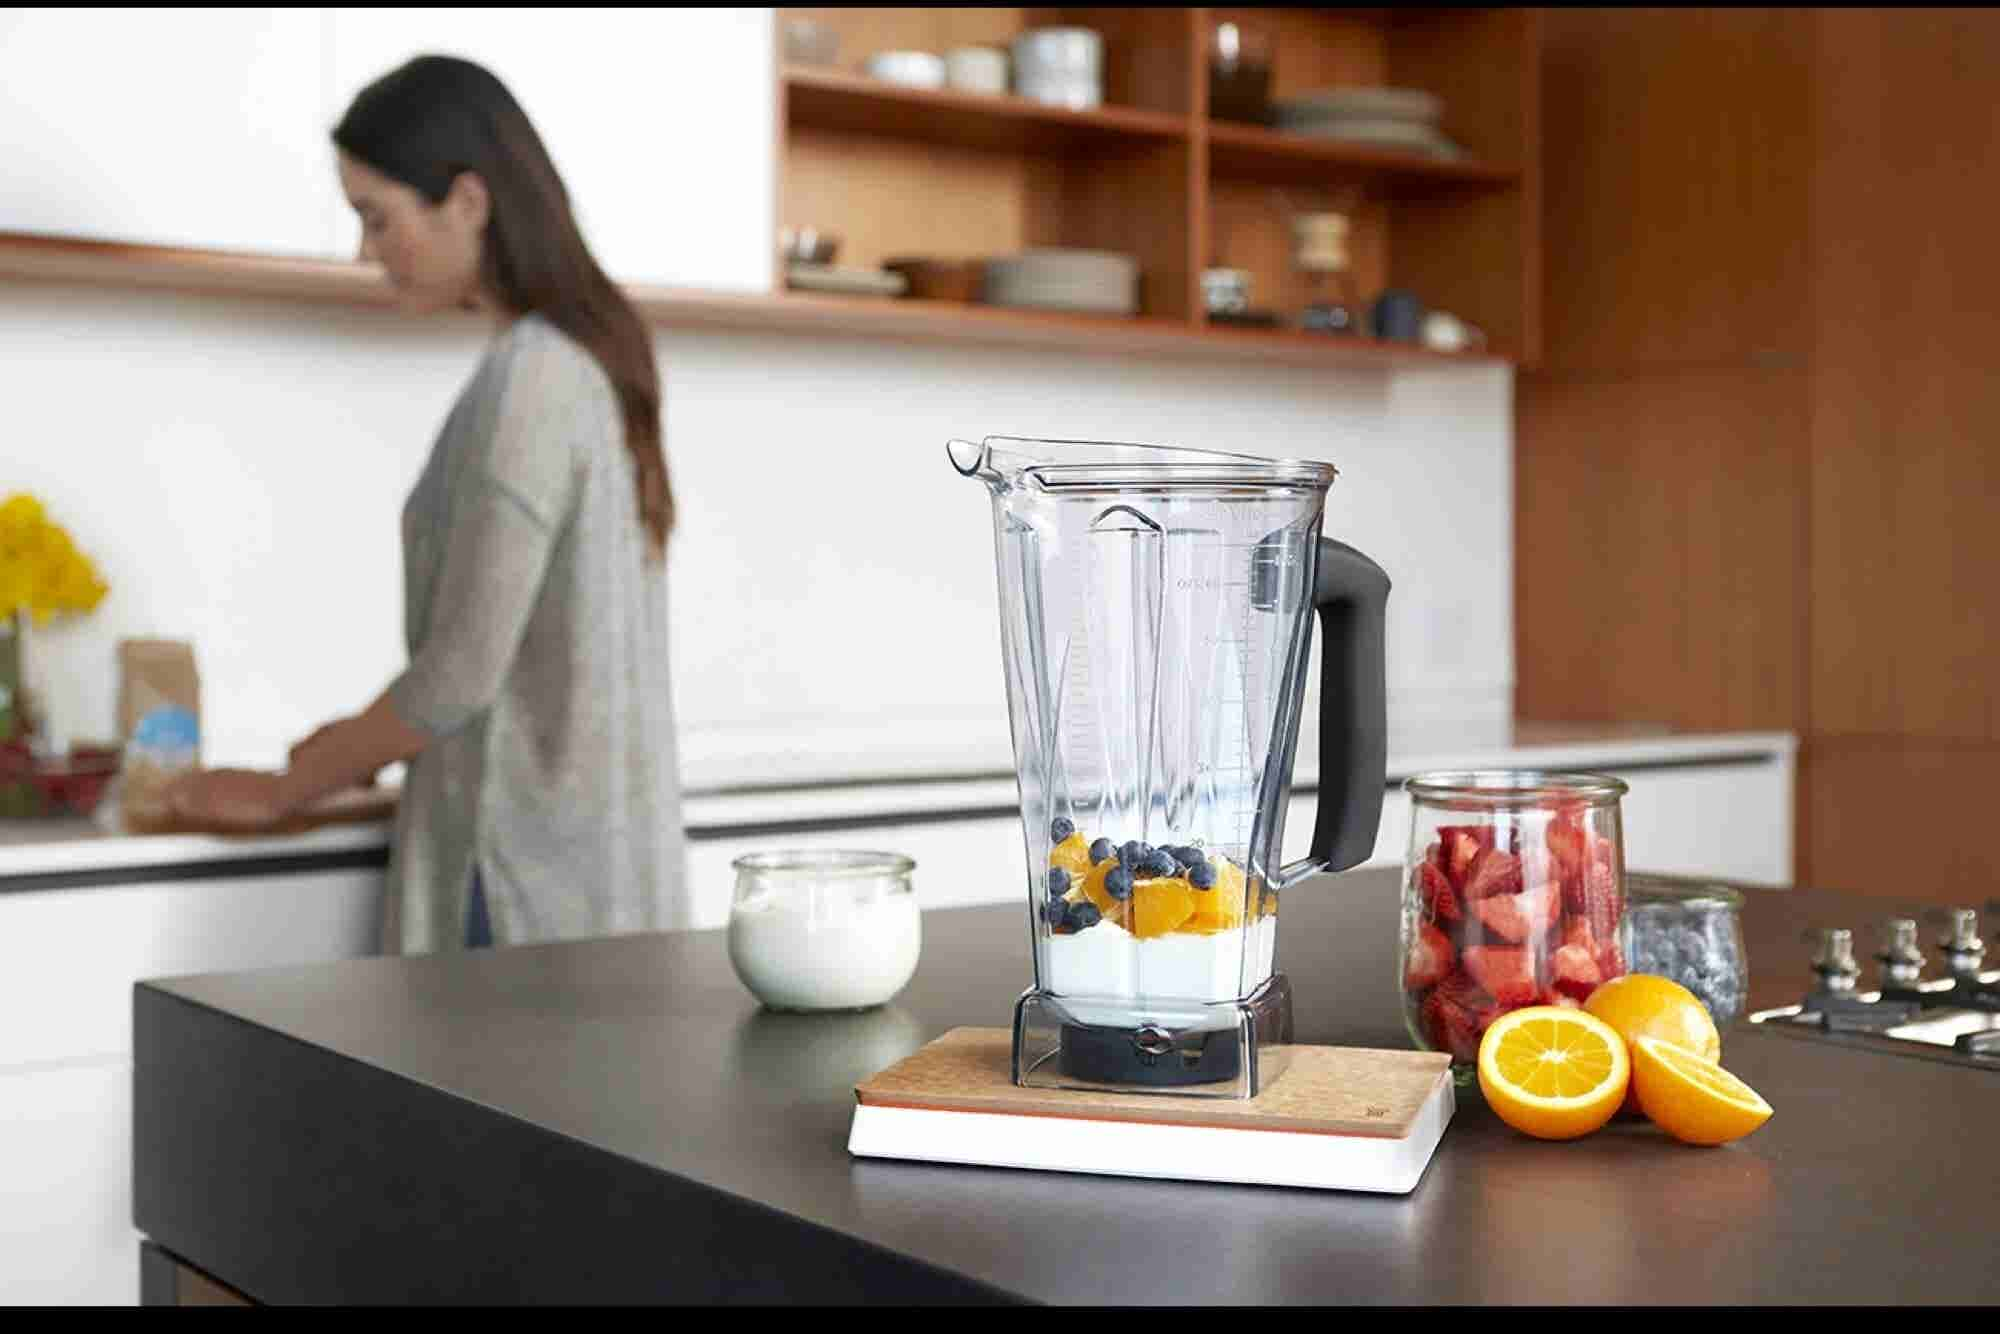 This Gadget Makes Your Entire Kitchen 'Smart'